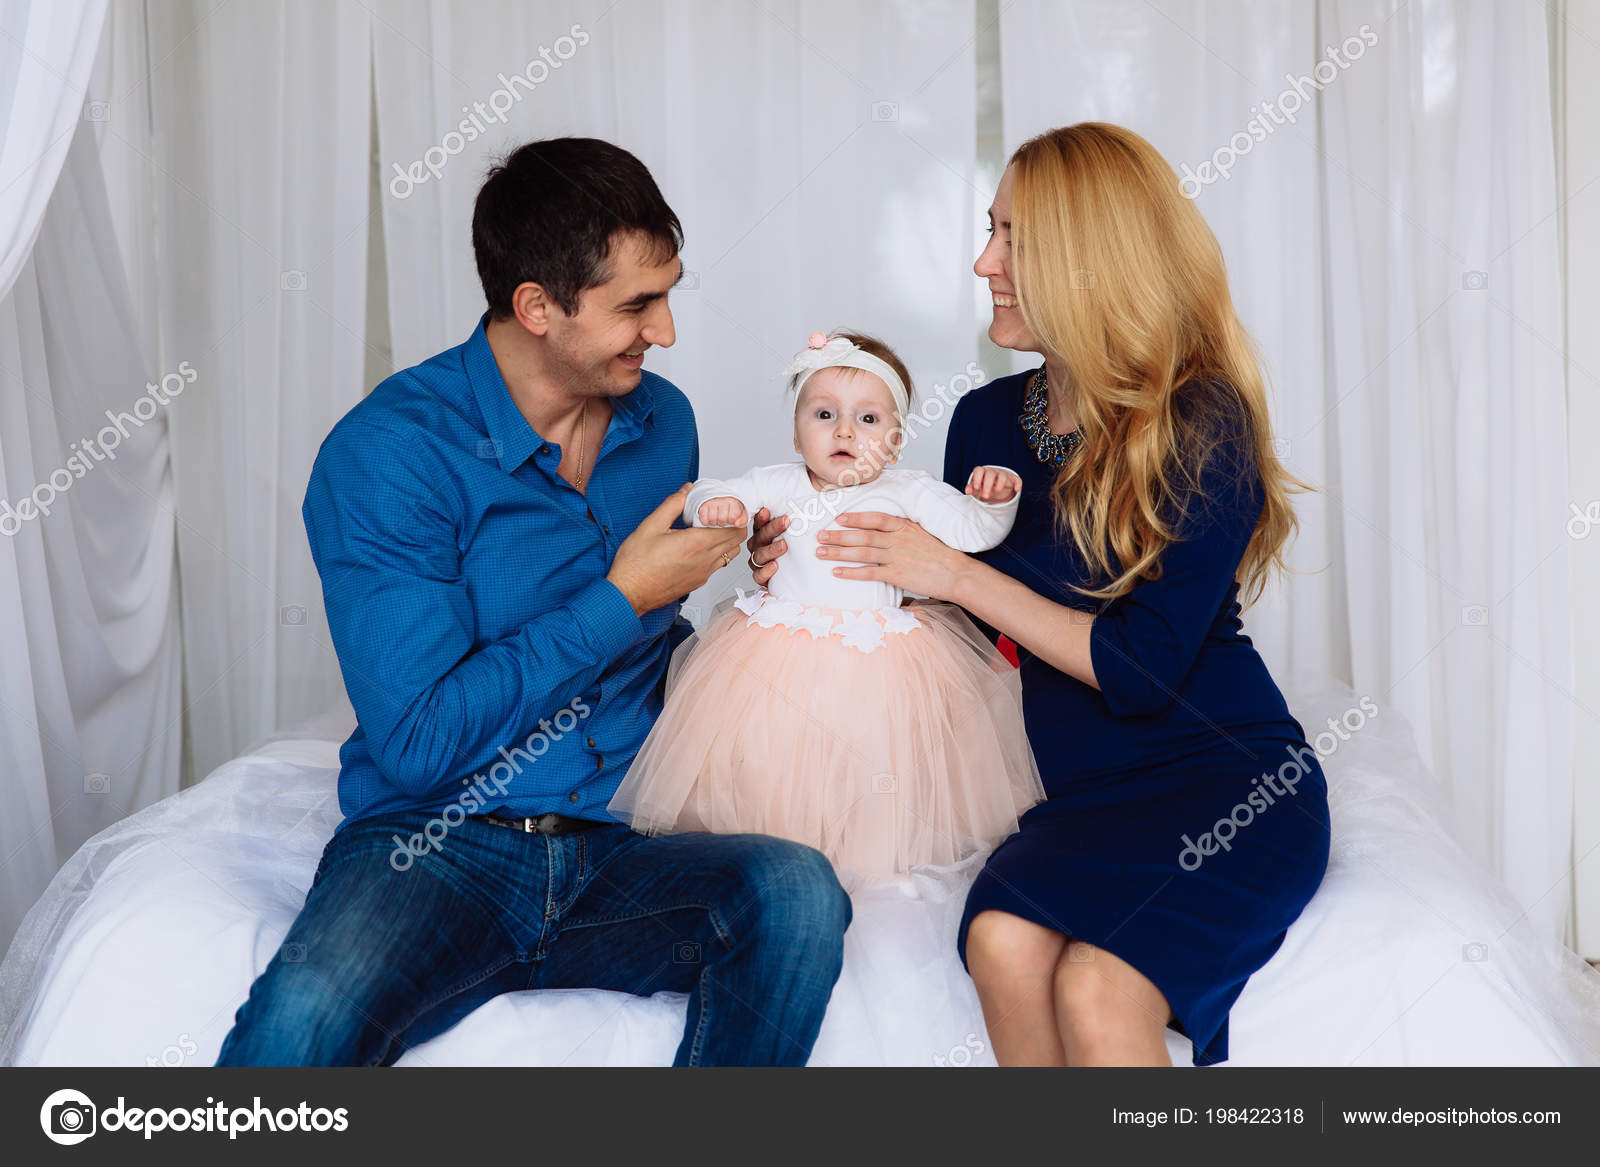 Mom Dad And A One Year Old Girl Between Them Gazes Intently At The